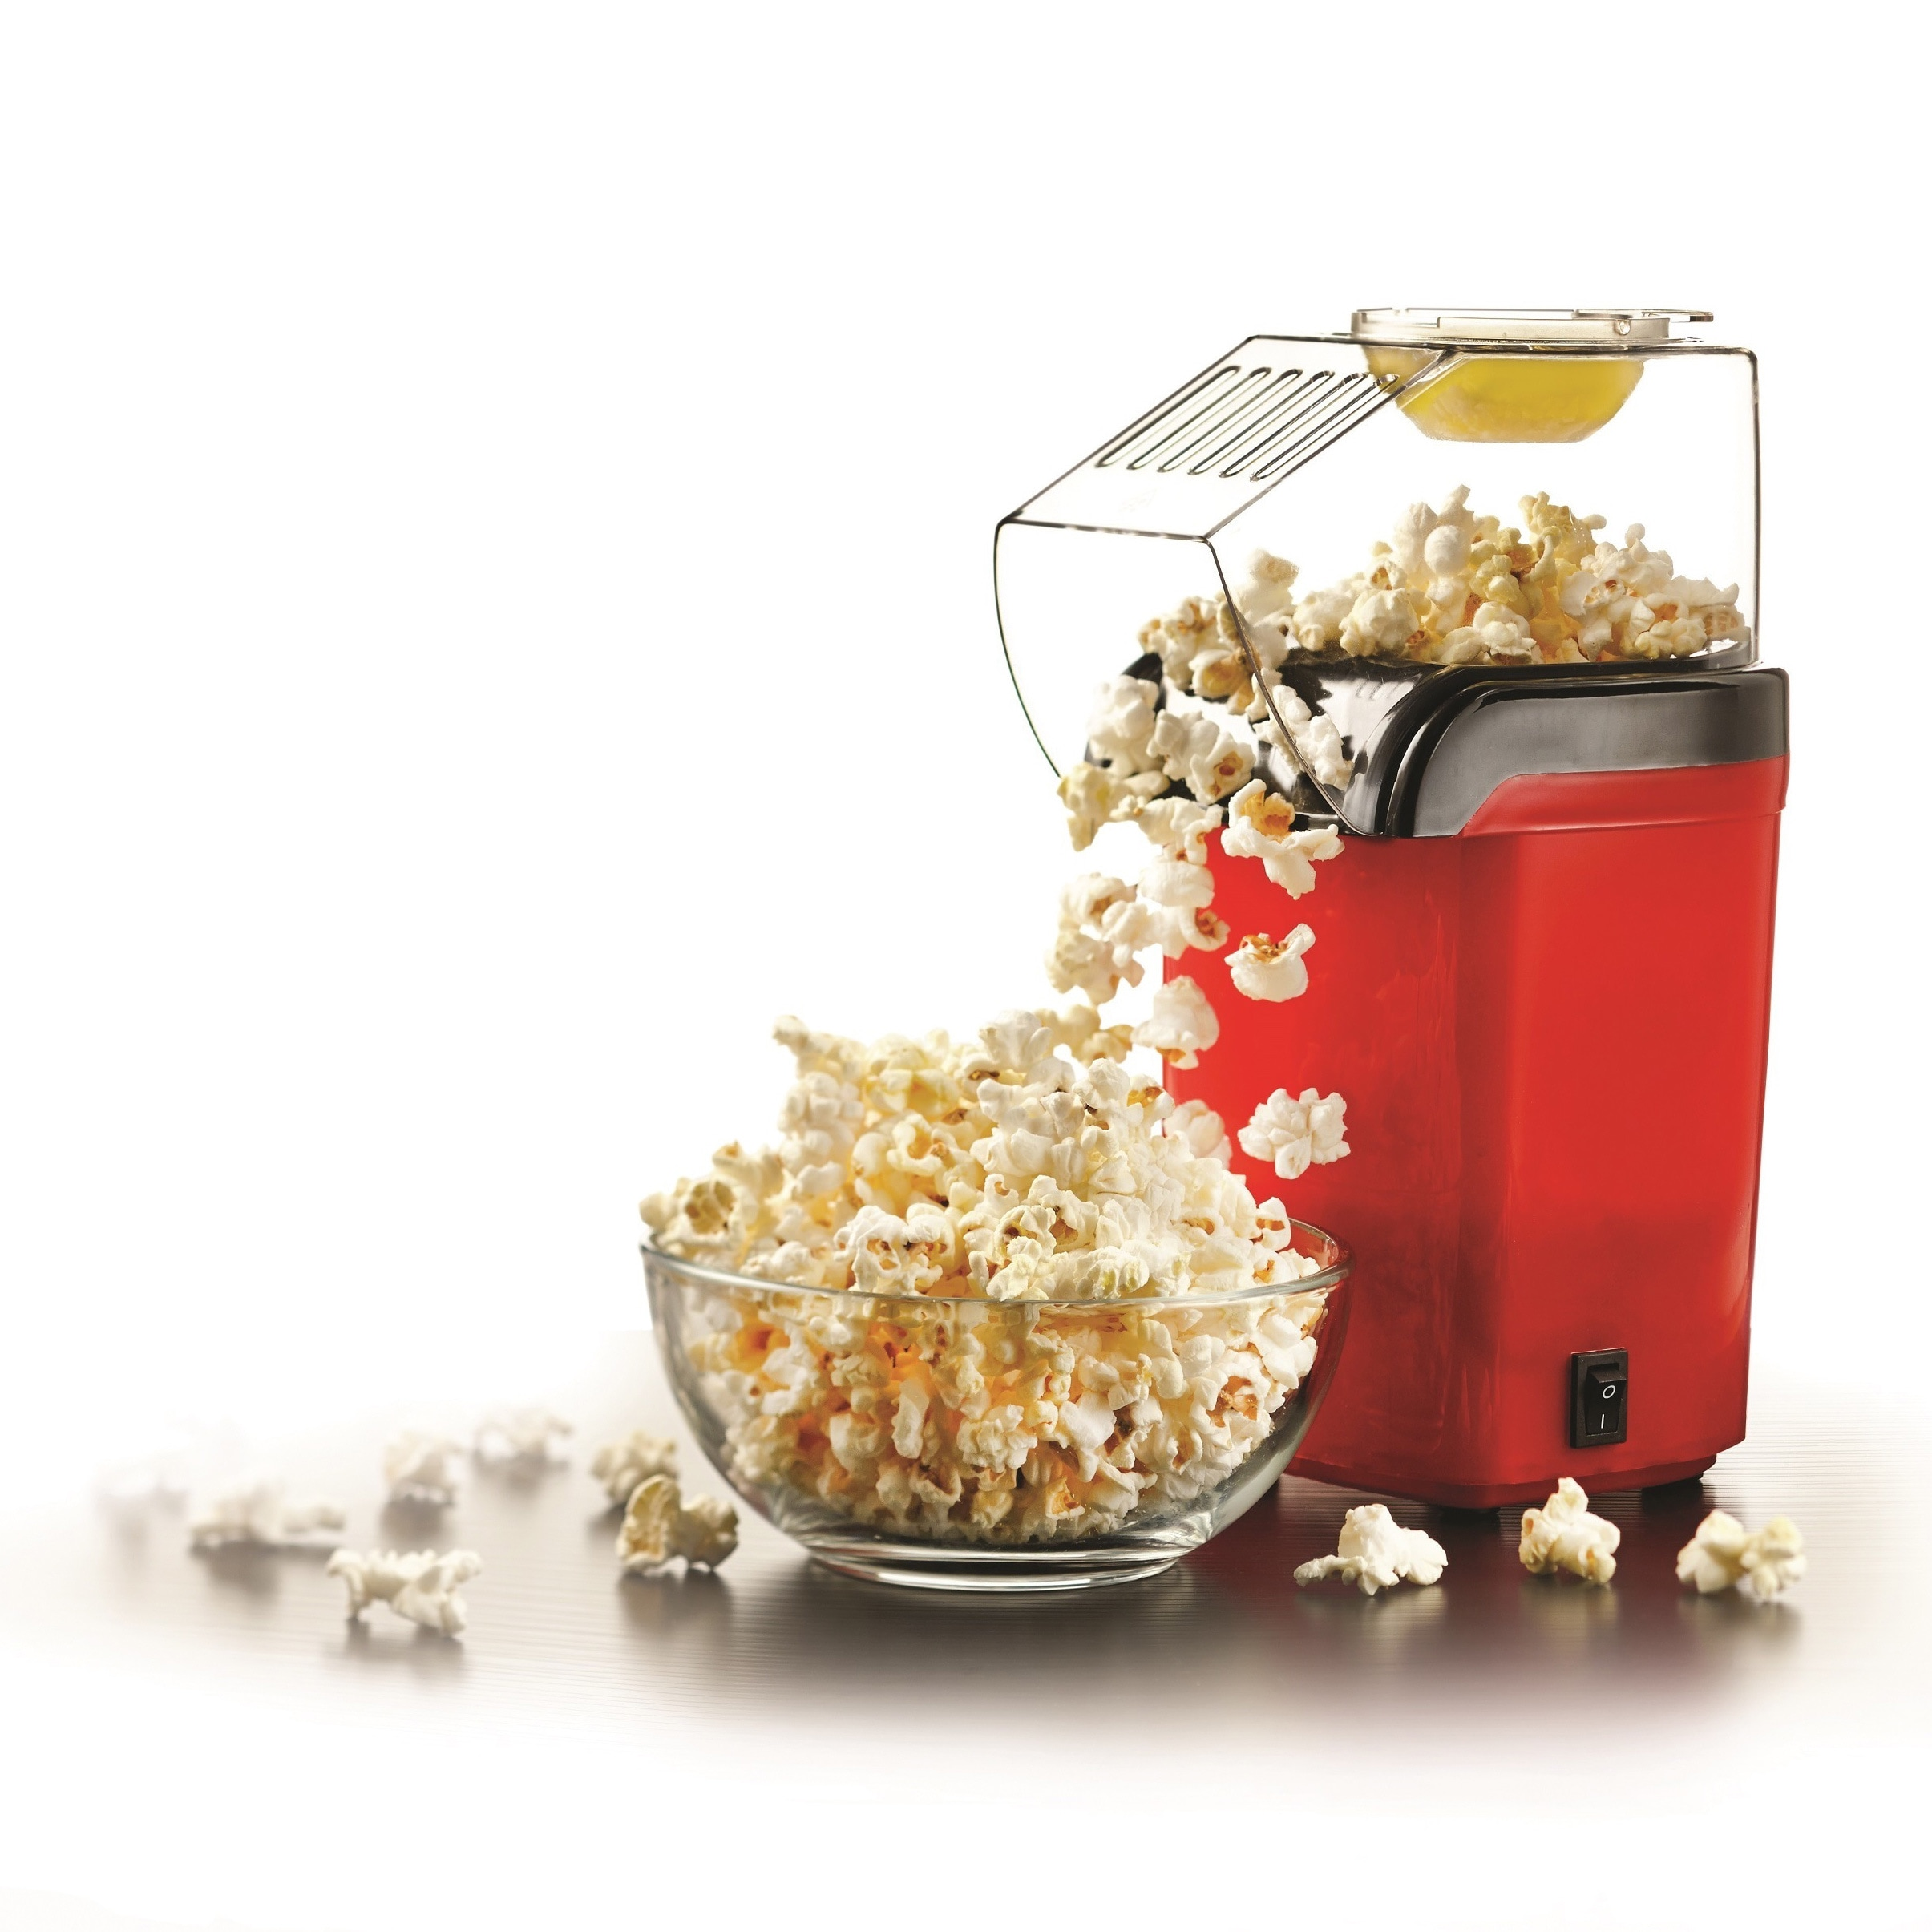 Brentwood PC-486R Red Hot Air Popcorn Maker (Plastic)